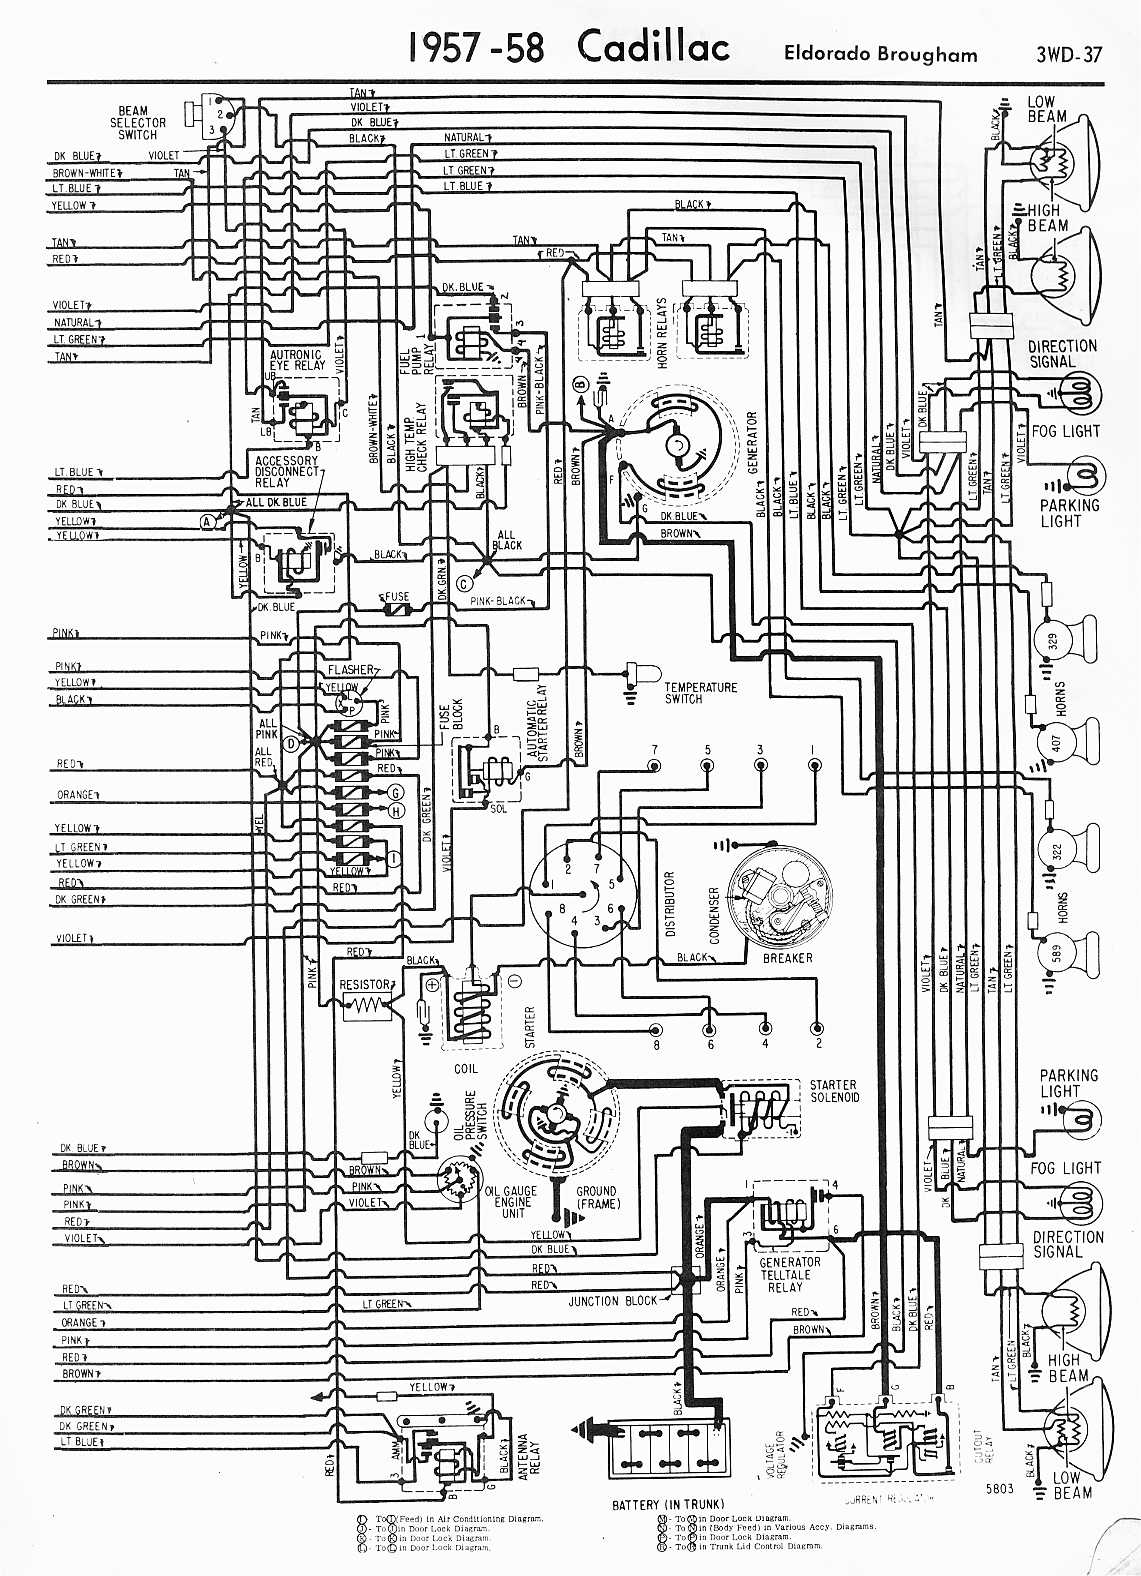 1962 Chevy Wiper Motor Wiring Diagram Library Truck Cadillac Diagrams 1957 1965